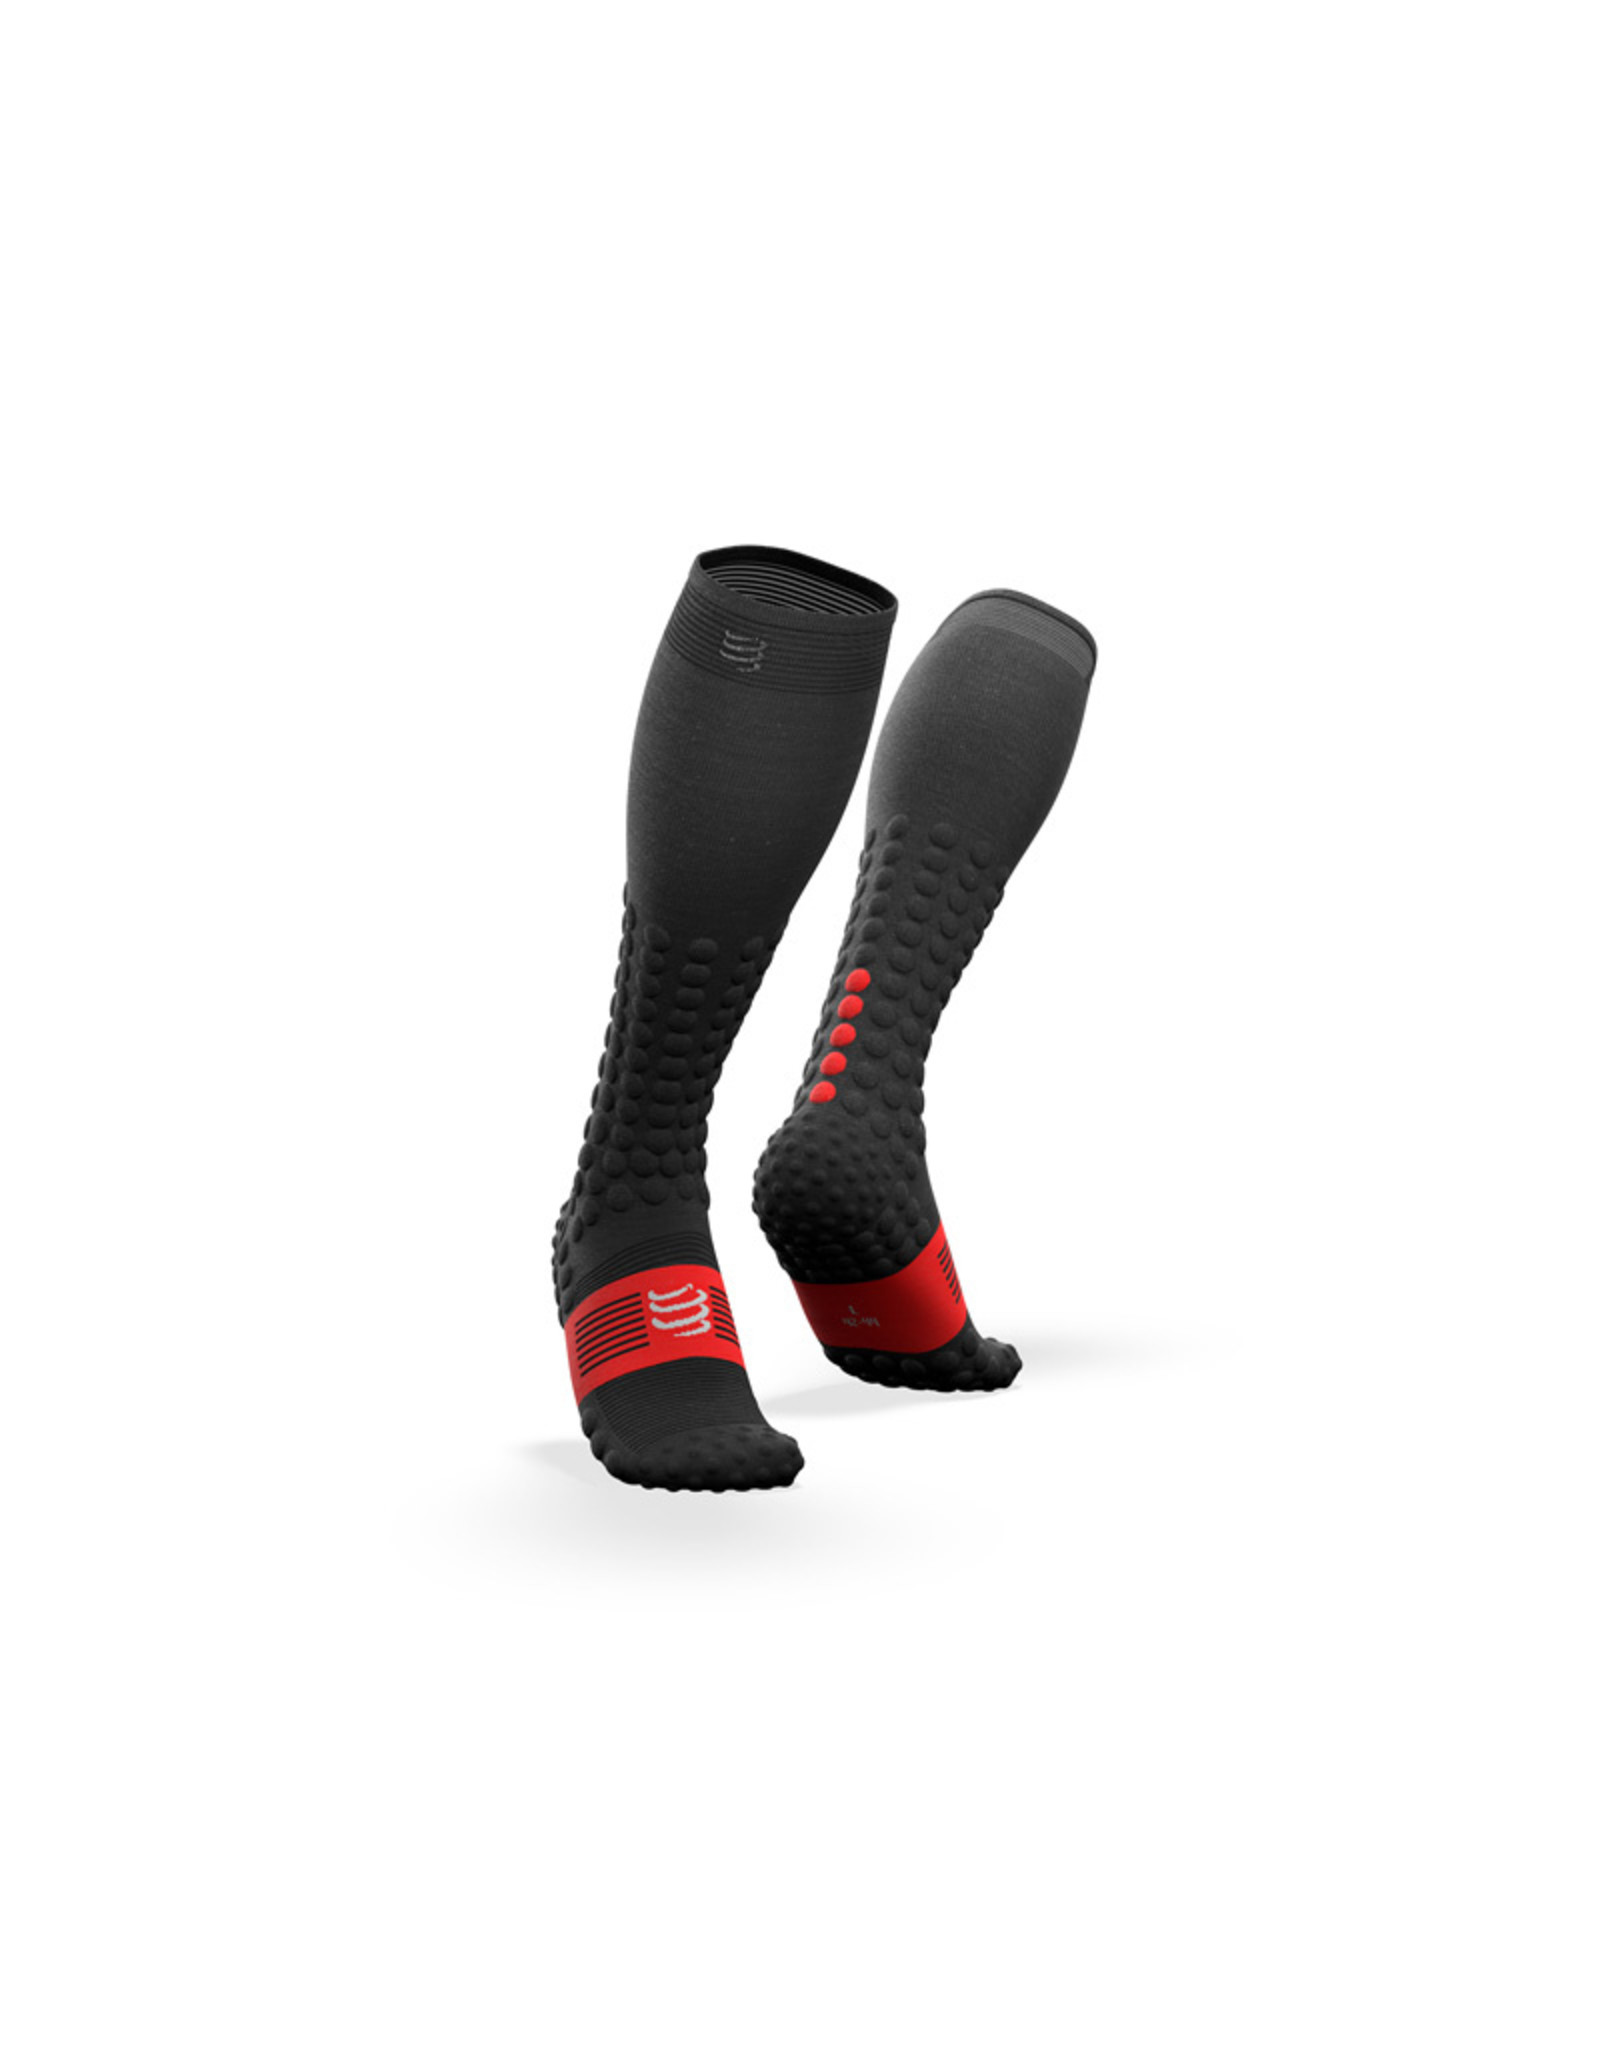 Compressport Full Socks Race & Recovery Compressiesokken - Zwart